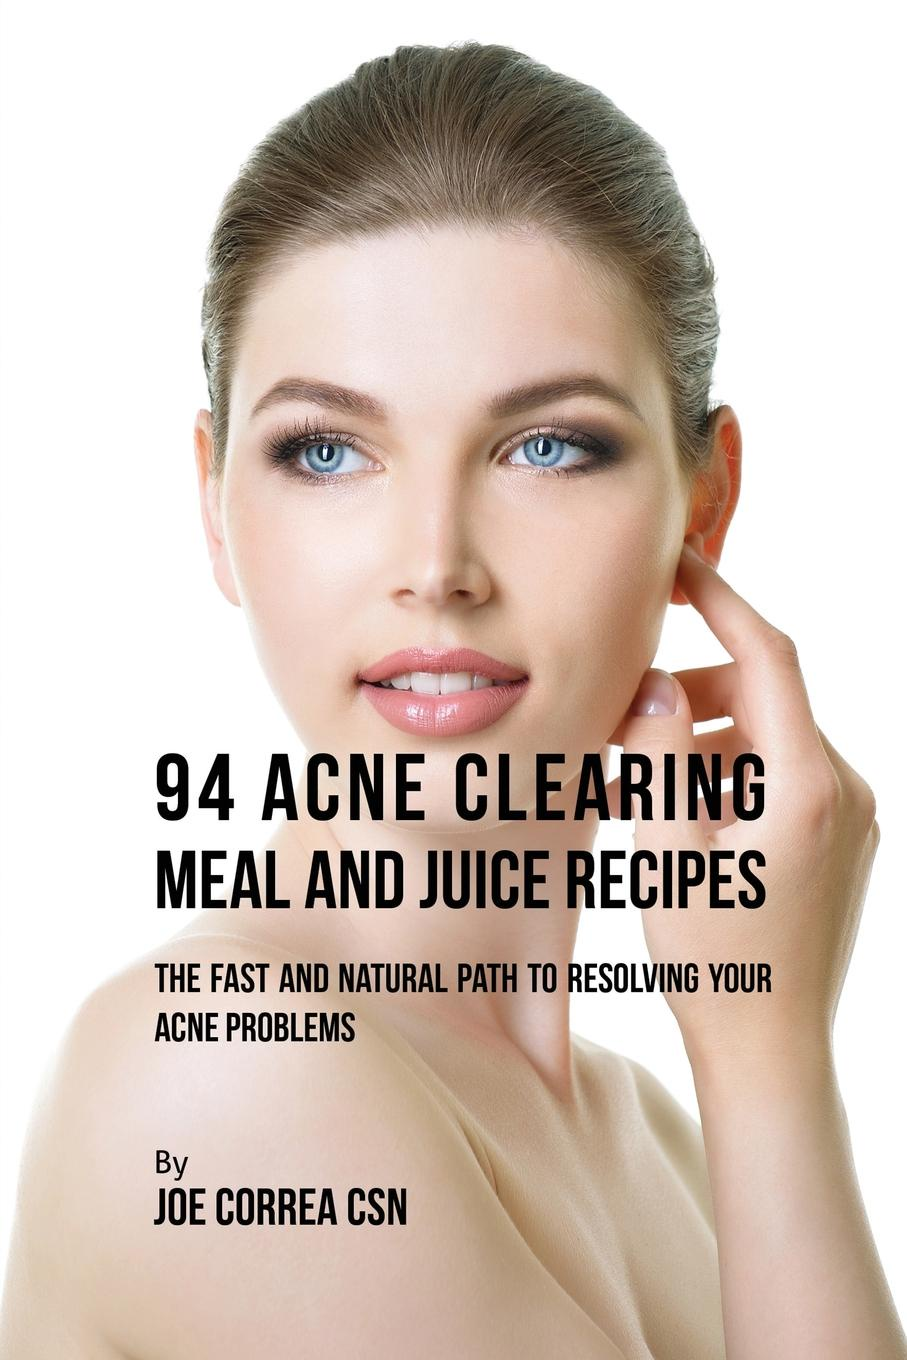 Joe Correa 94 Acne Clearing Meal and Juice Recipes. The Fast and Natural Path to Resolving Your Acne Problems рюкзак охотника huntsman пикбастон 80